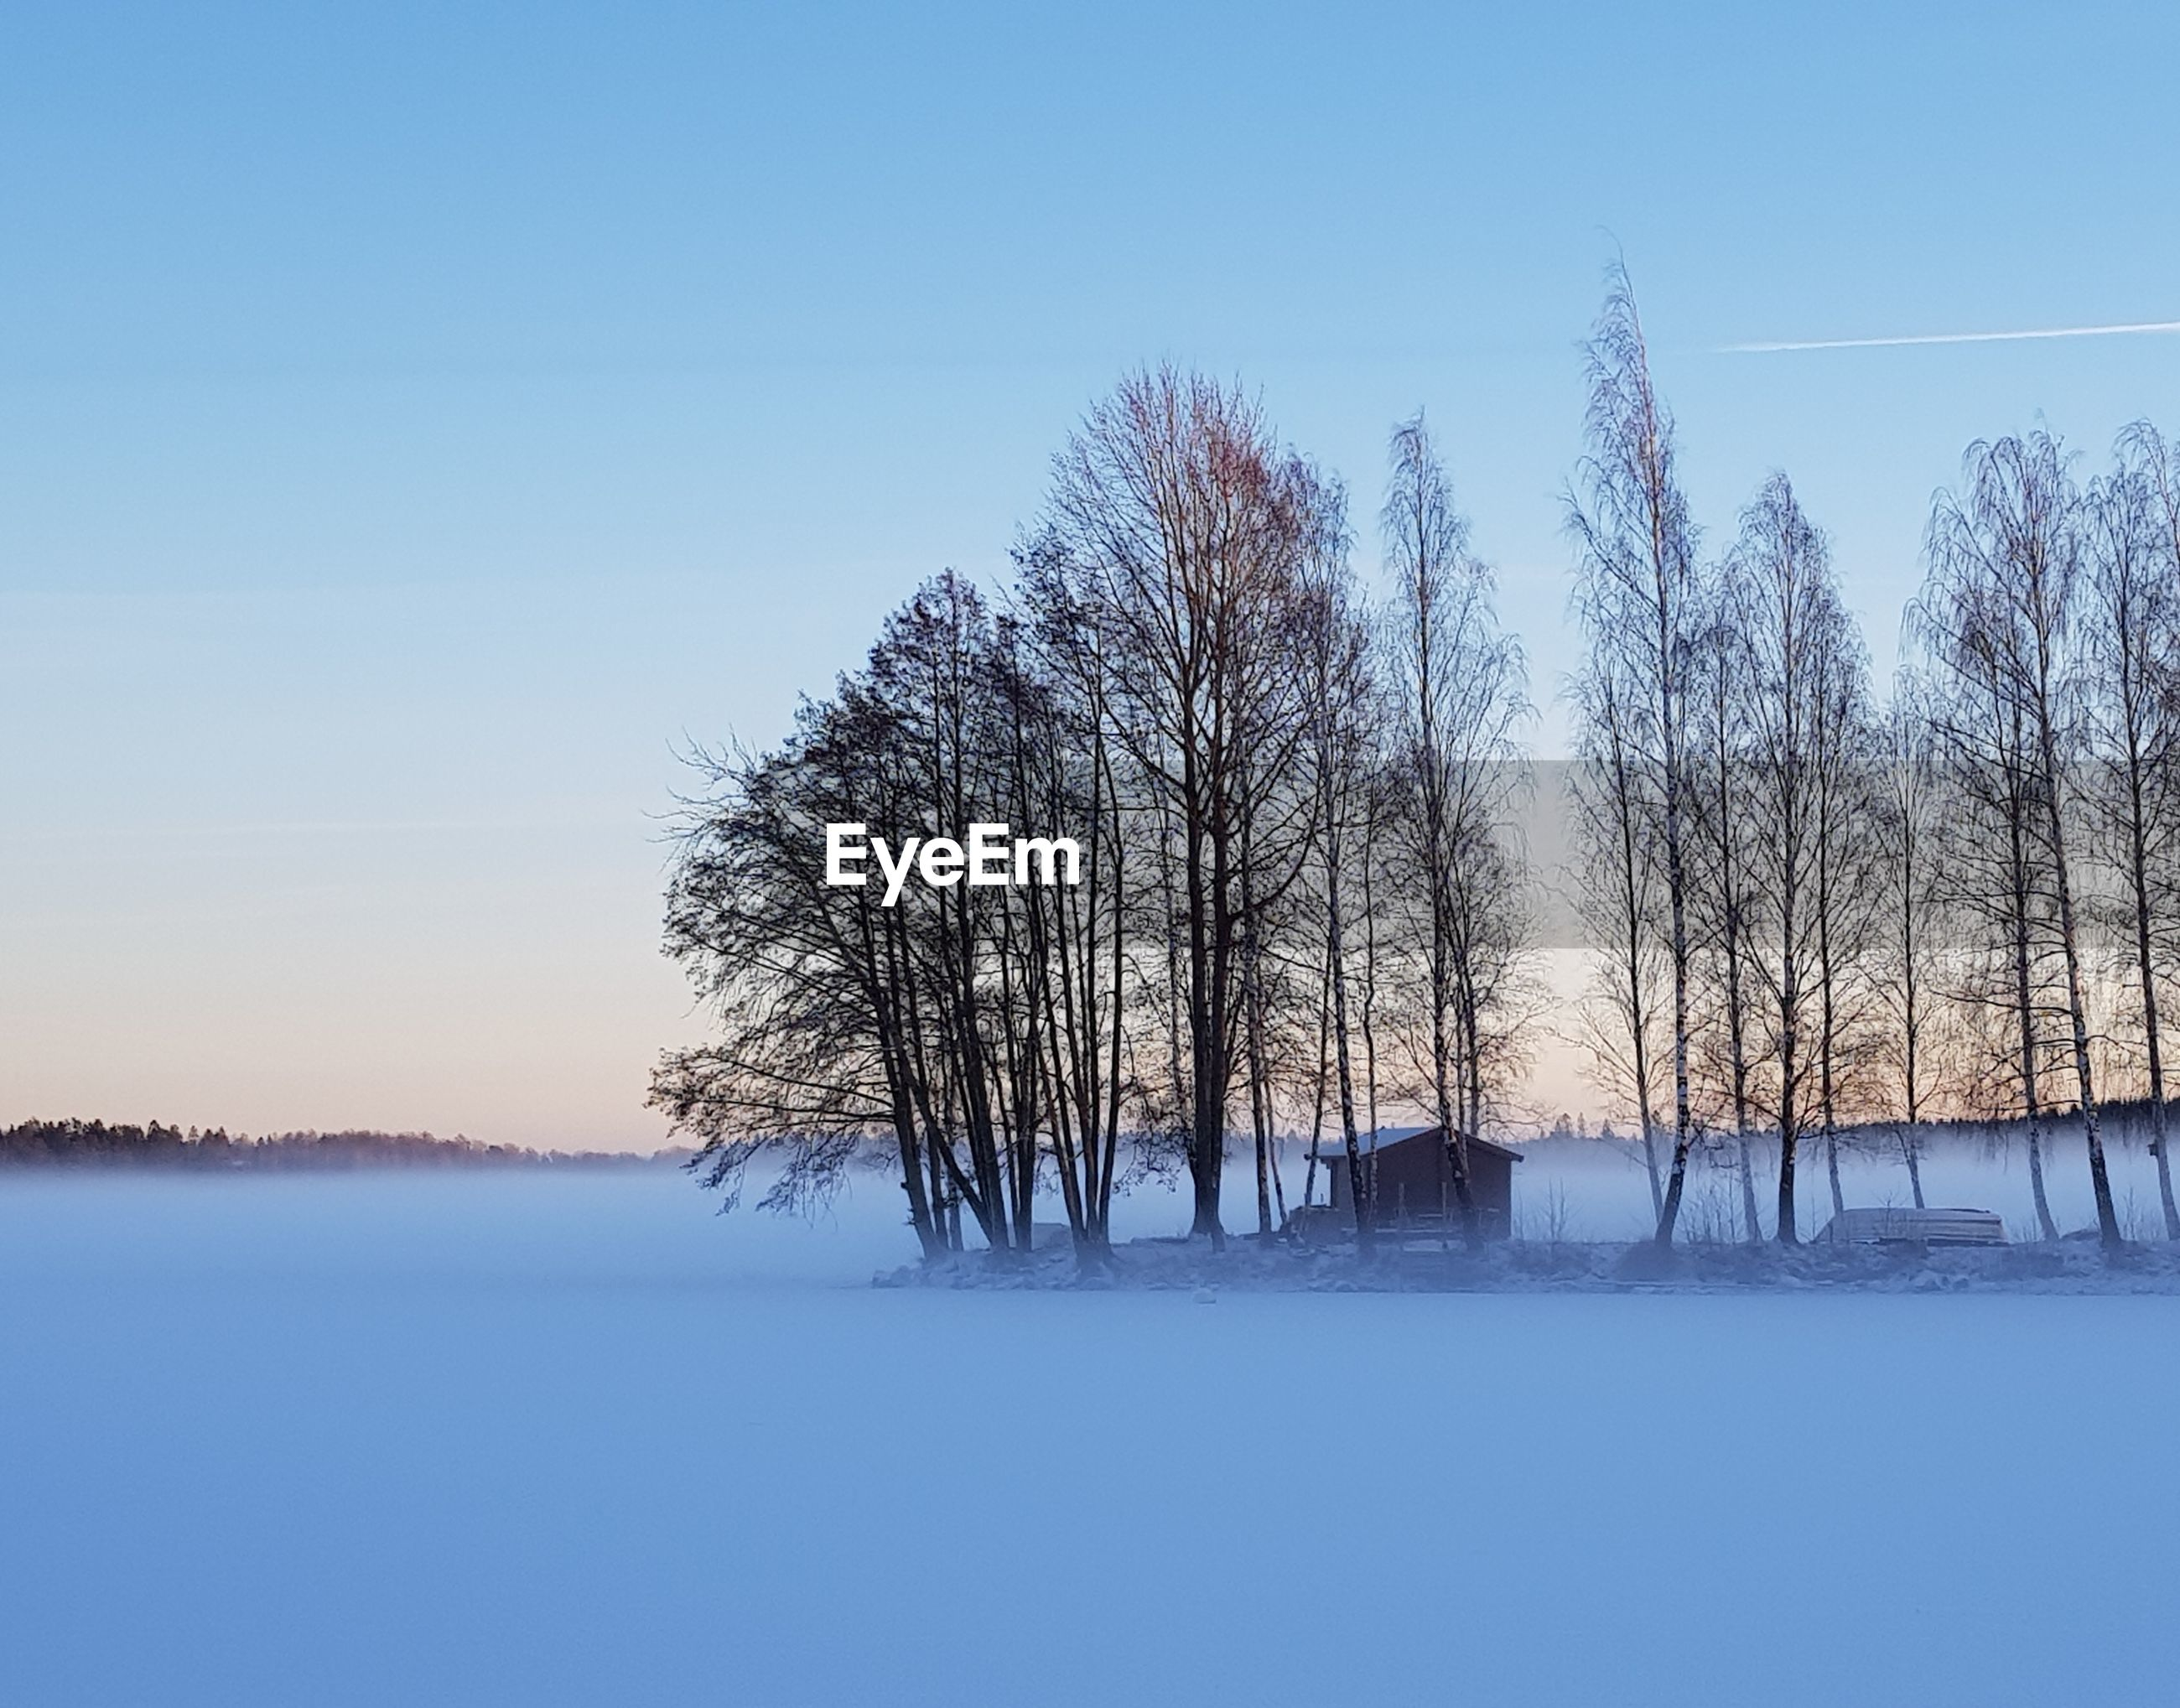 BARE TREES ON SNOWY LANDSCAPE AGAINST CLEAR BLUE SKY